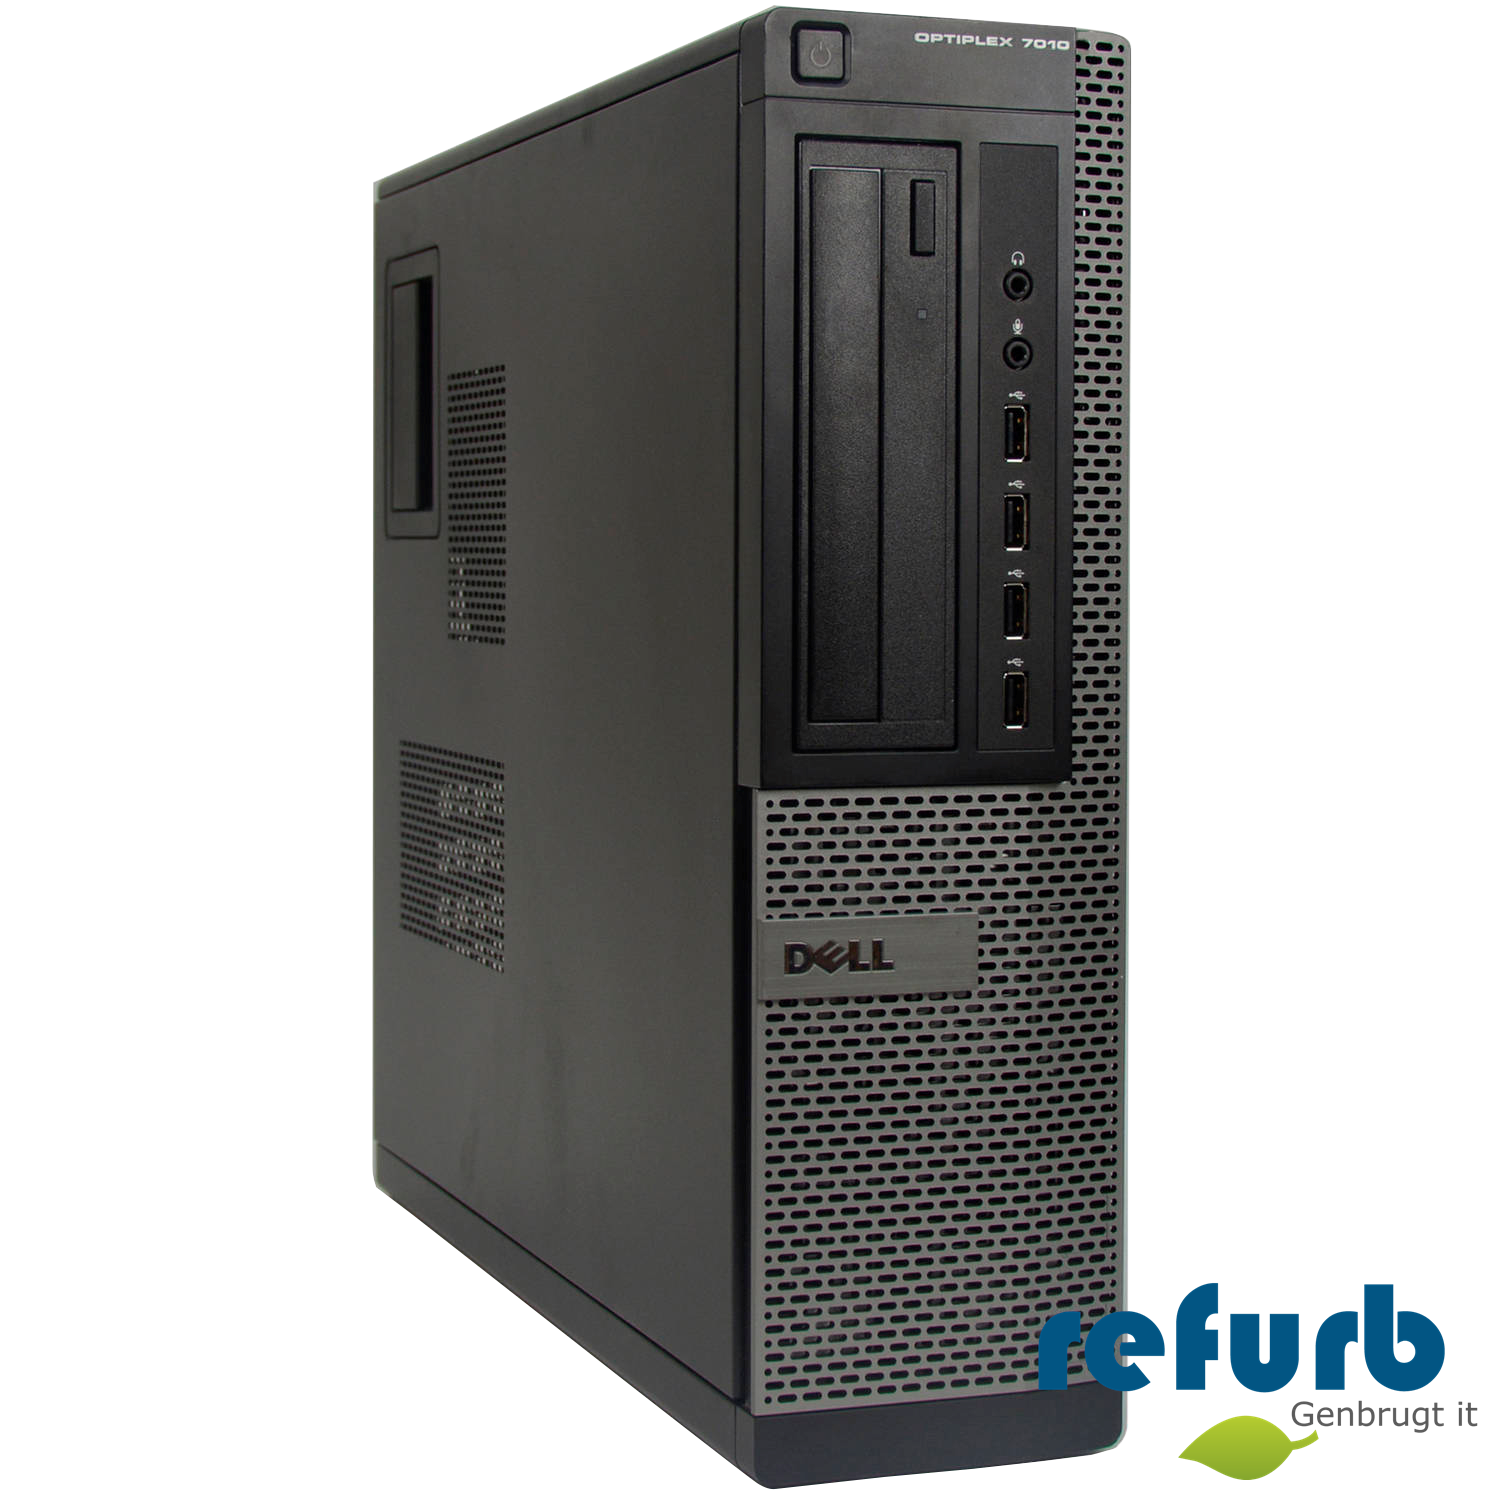 Dell optiplex 790 dt fra Dell fra refurb